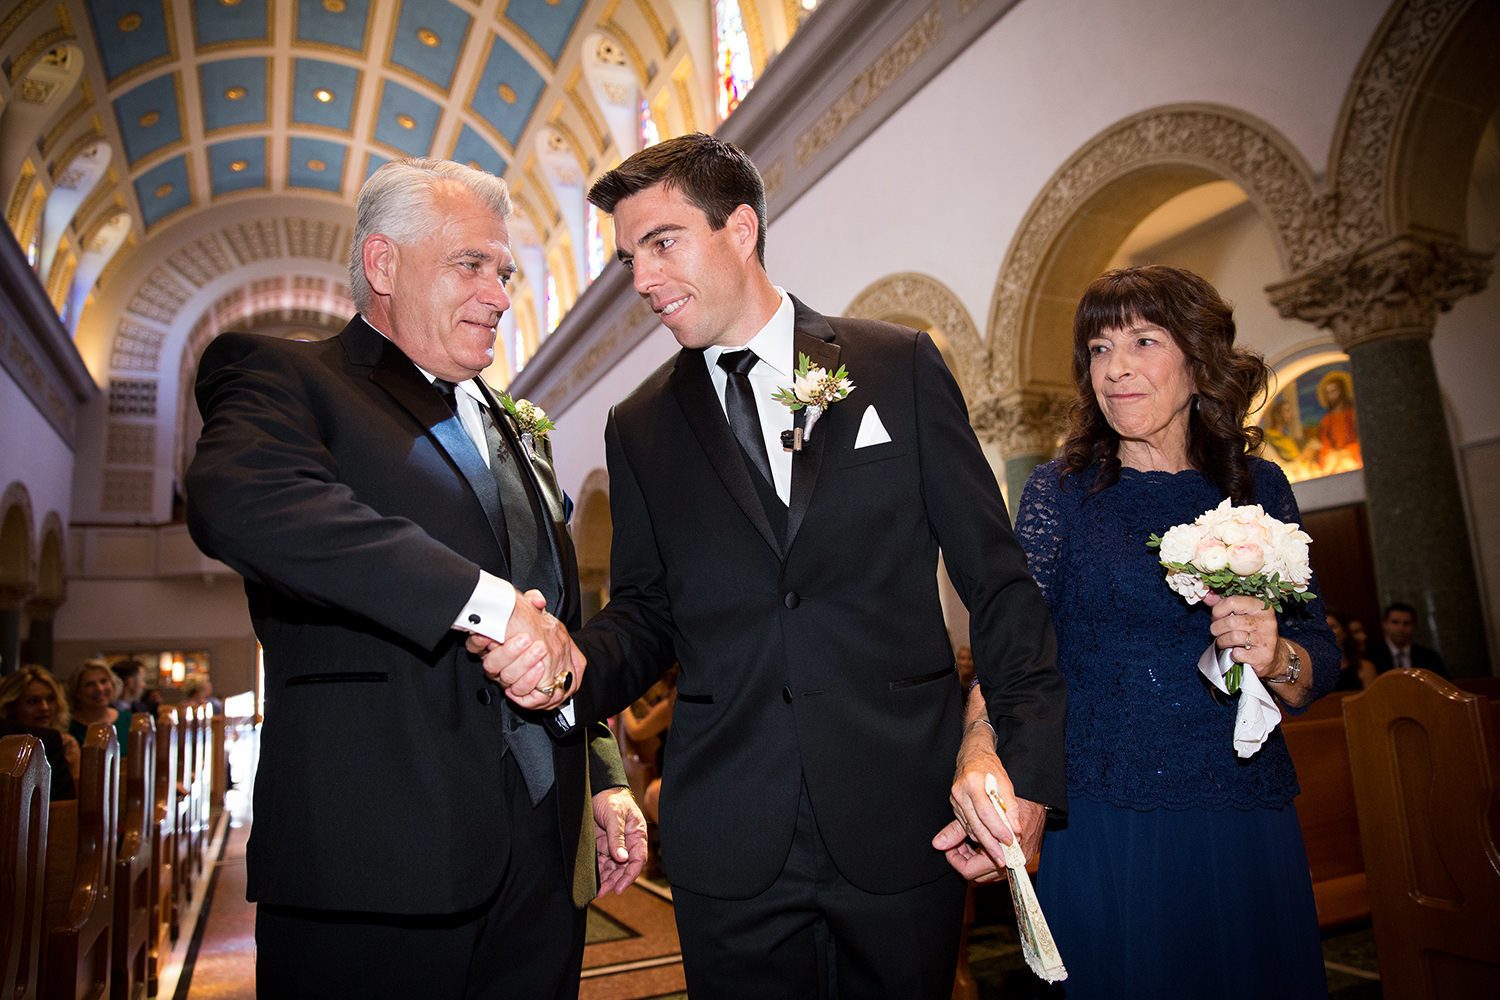 groom with his parents at ceremony